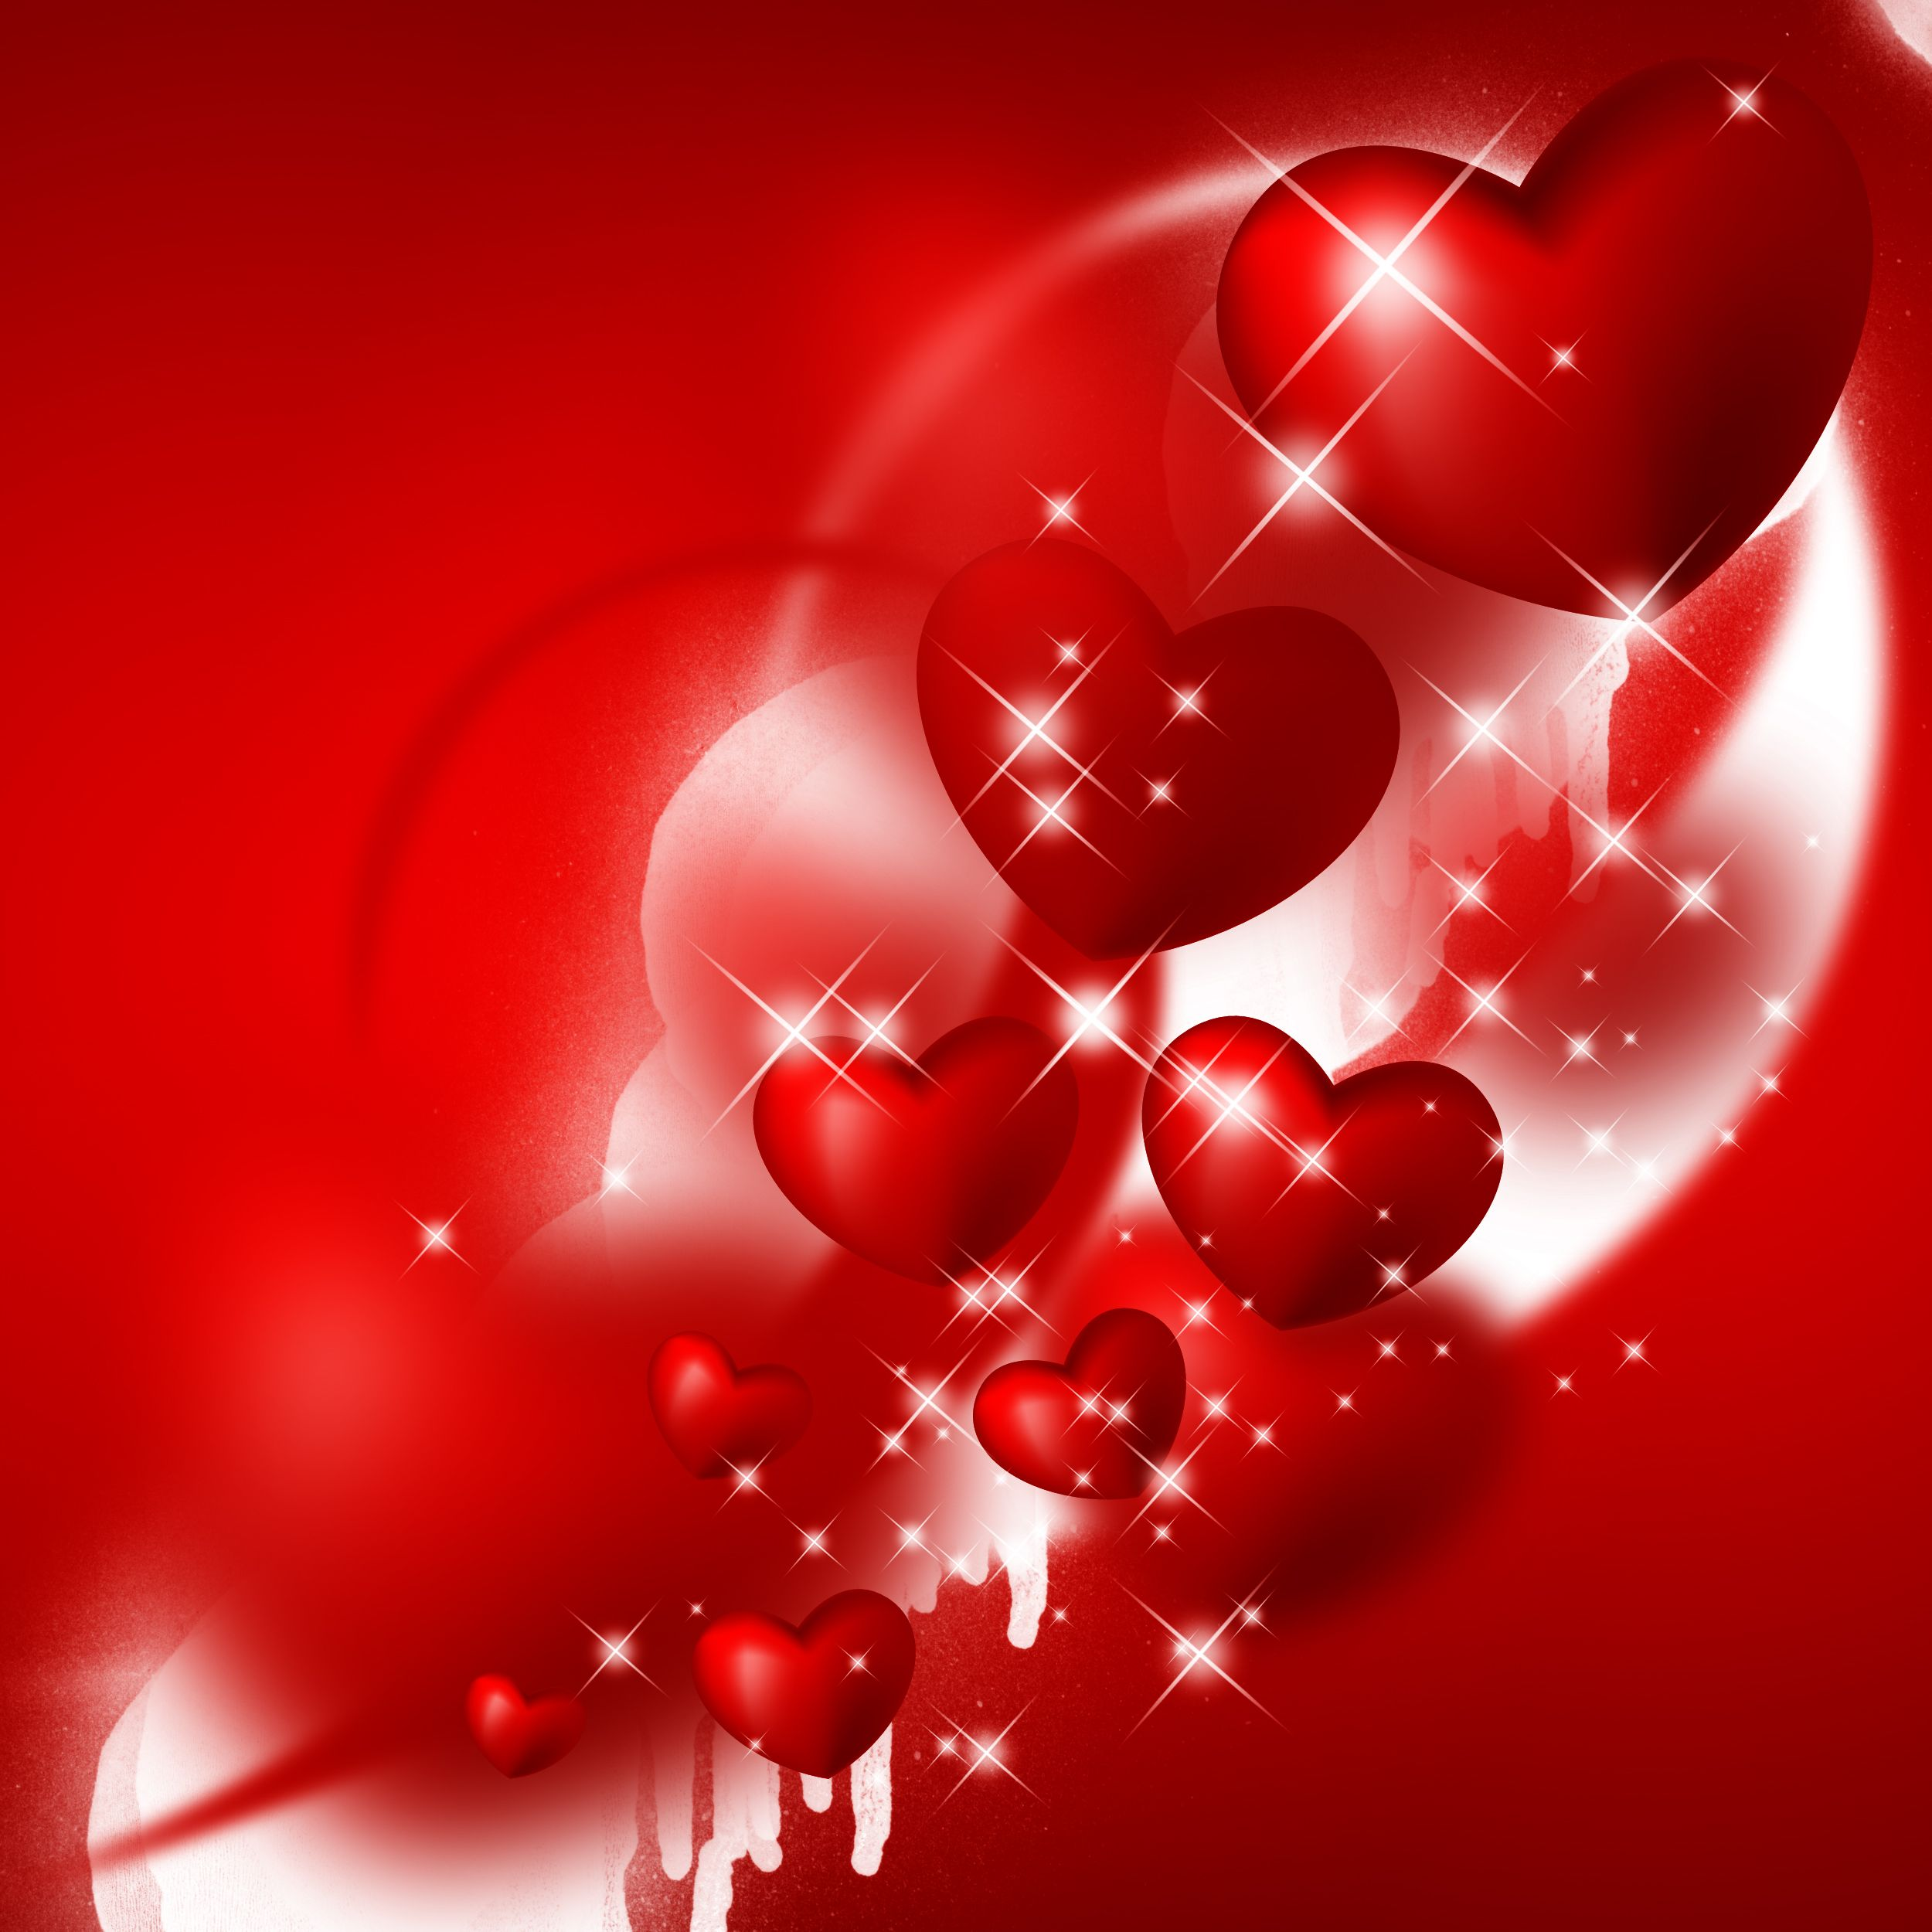 Explore Happy Valentines Day Sms And More! Valentine 2015 Background  Wallpapers